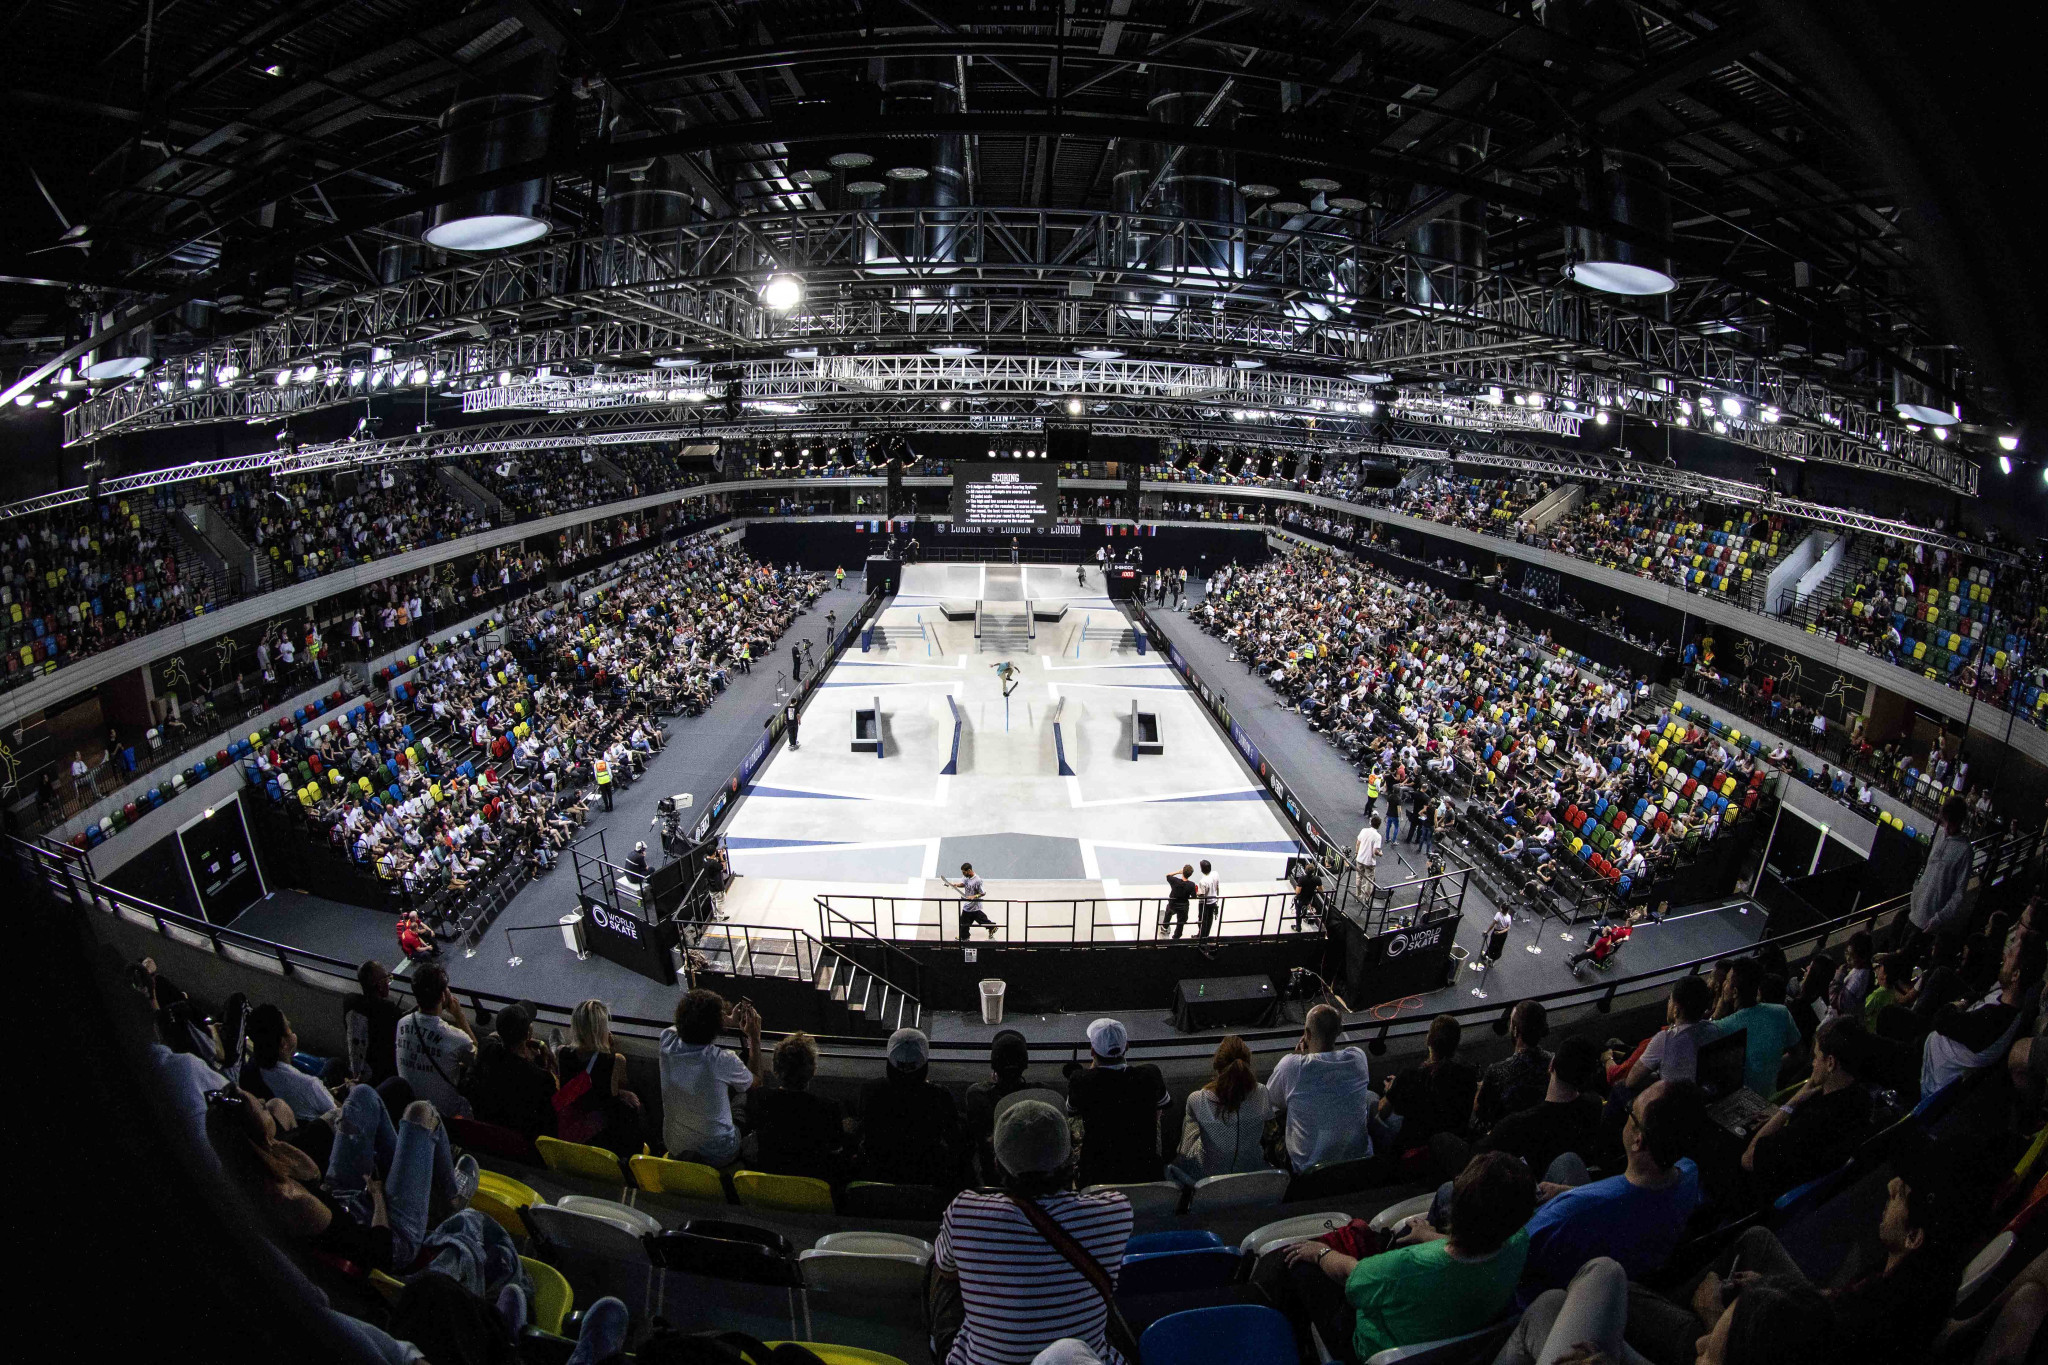 The Los Angeles event is following a competition in London's Copper Box Arena ©StreetLeagueSkateboarding